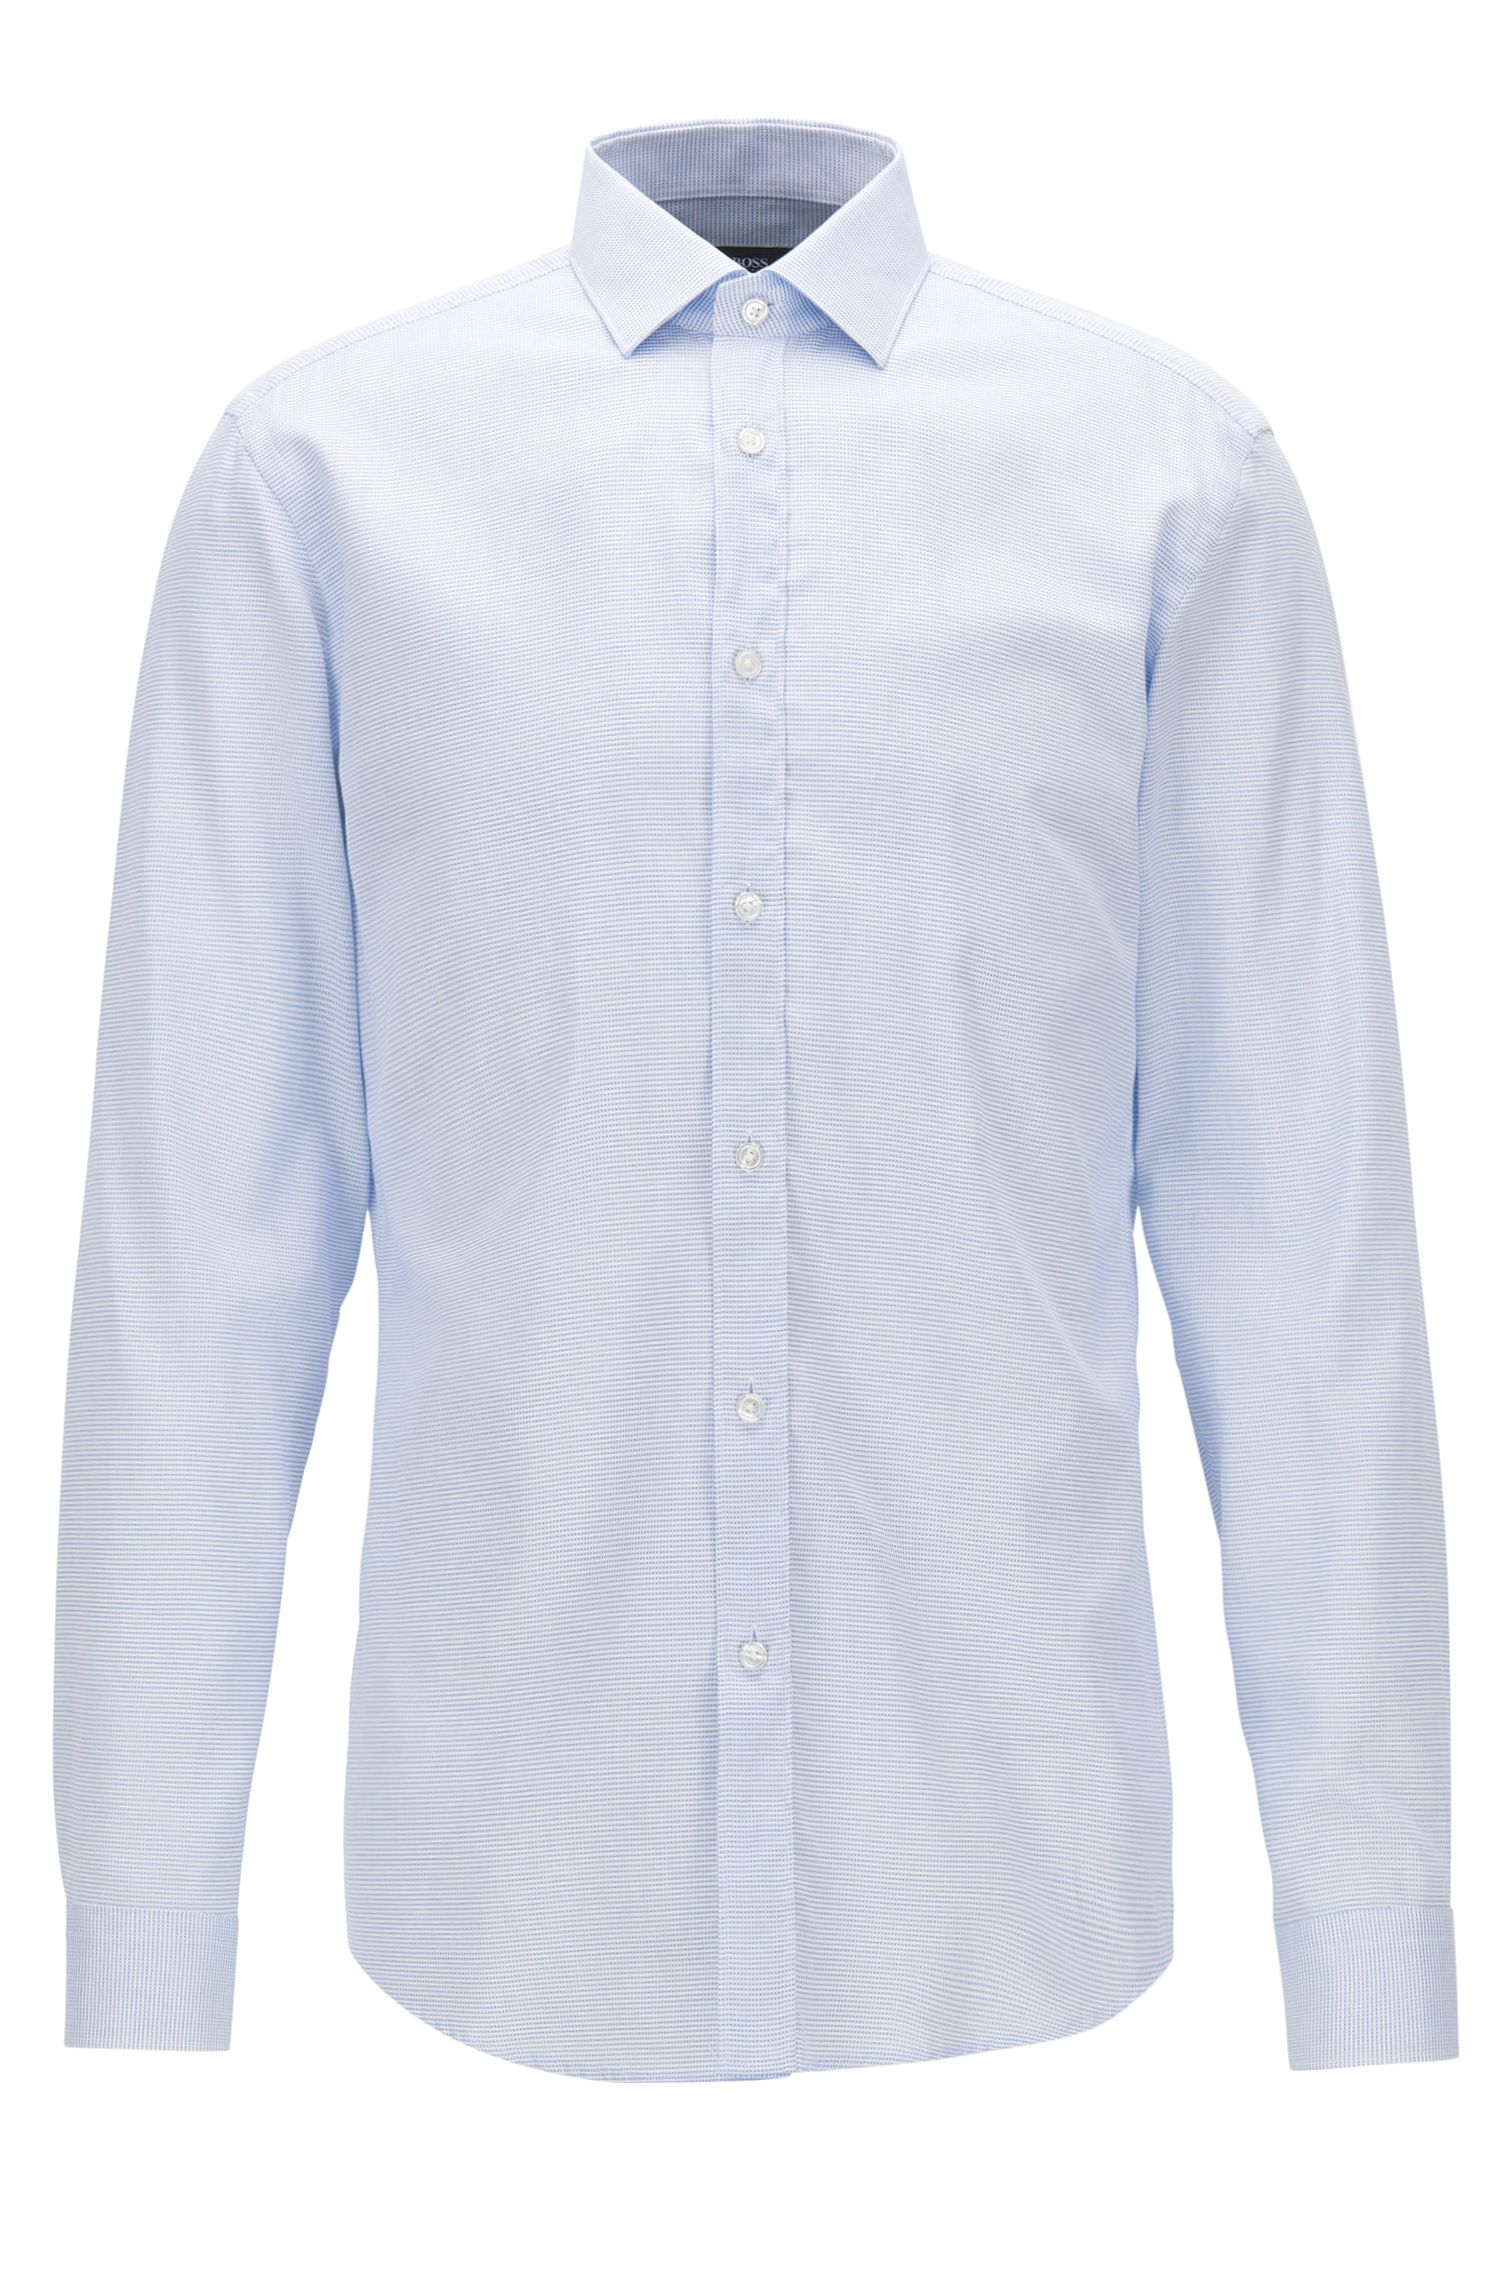 Cotton micro-structure shirt in a slim fit